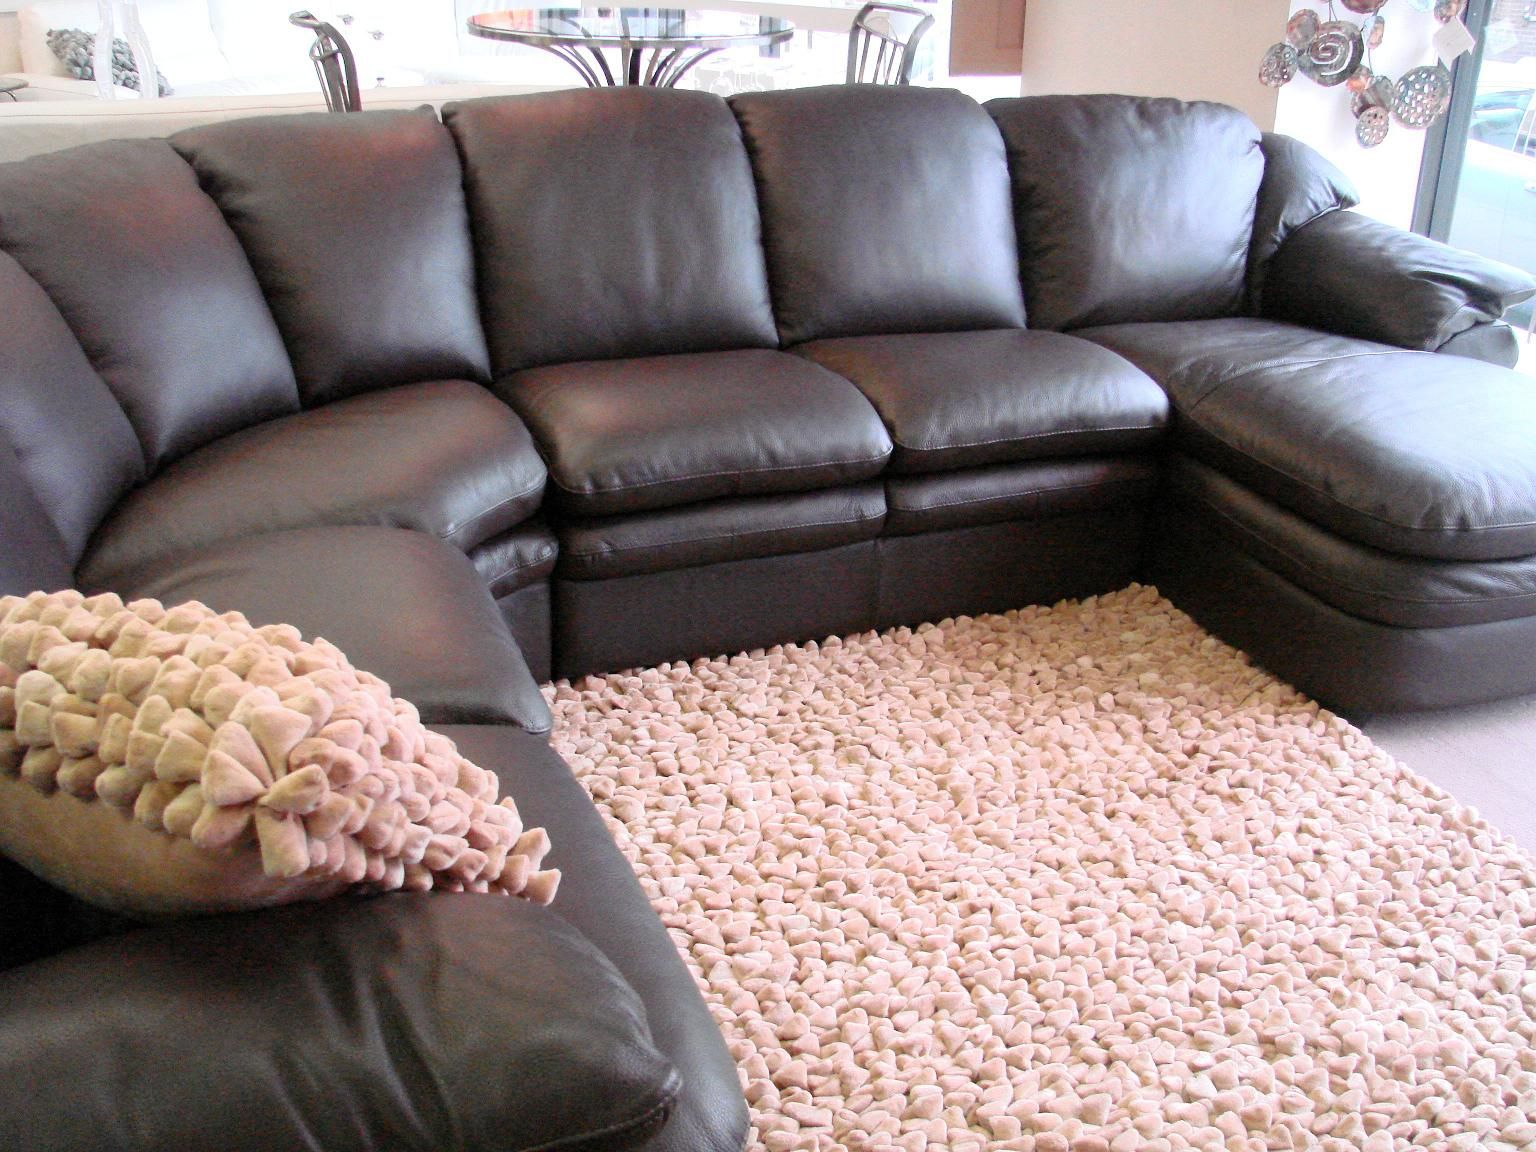 Shiny Leather Sectional For Sale Sofa Couch Loveseat